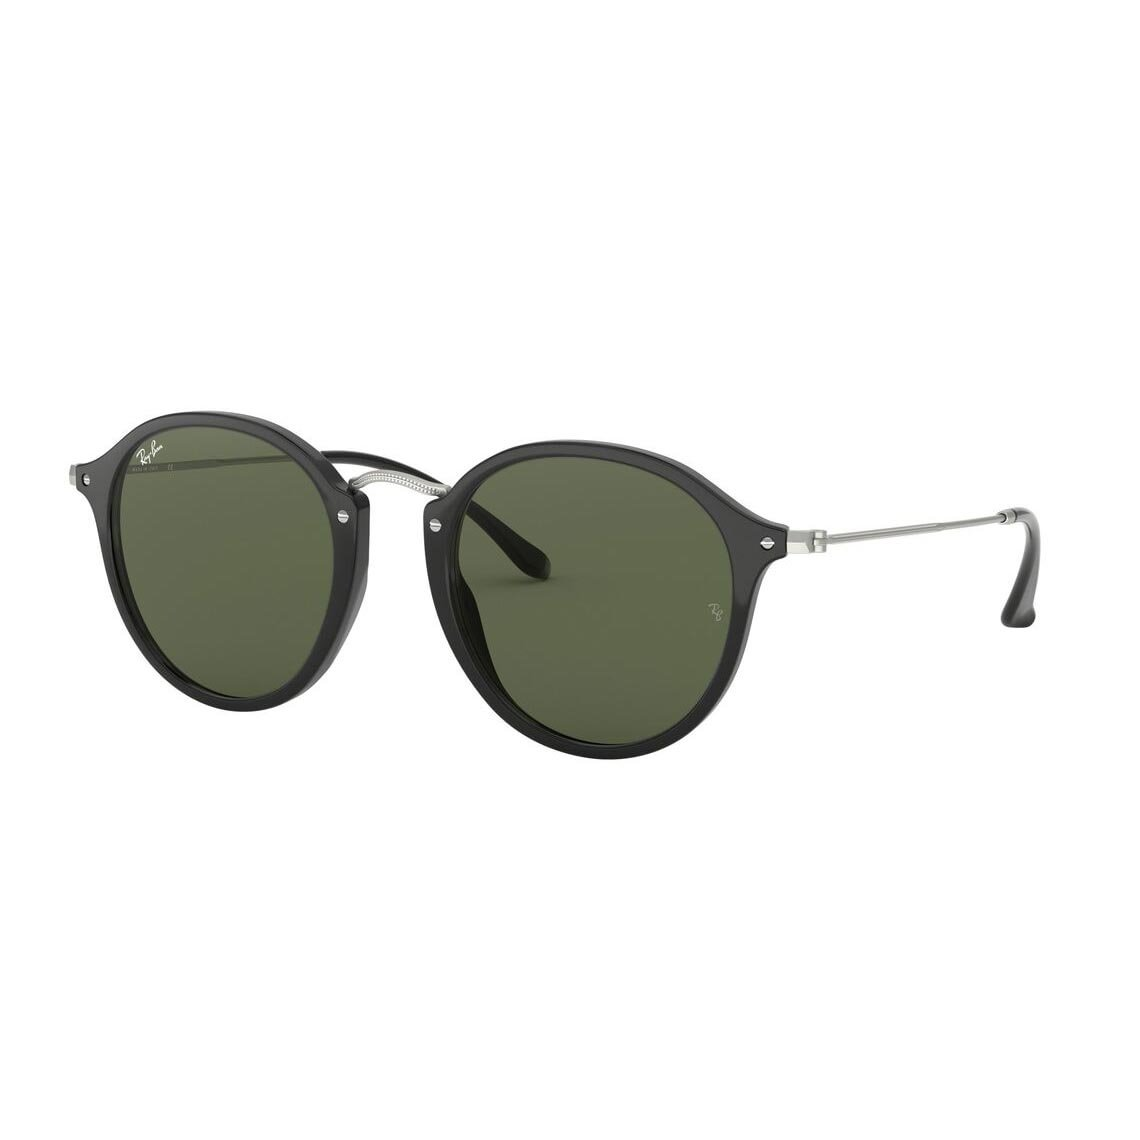 Ray-Ban Round fleck RB2447 901 52